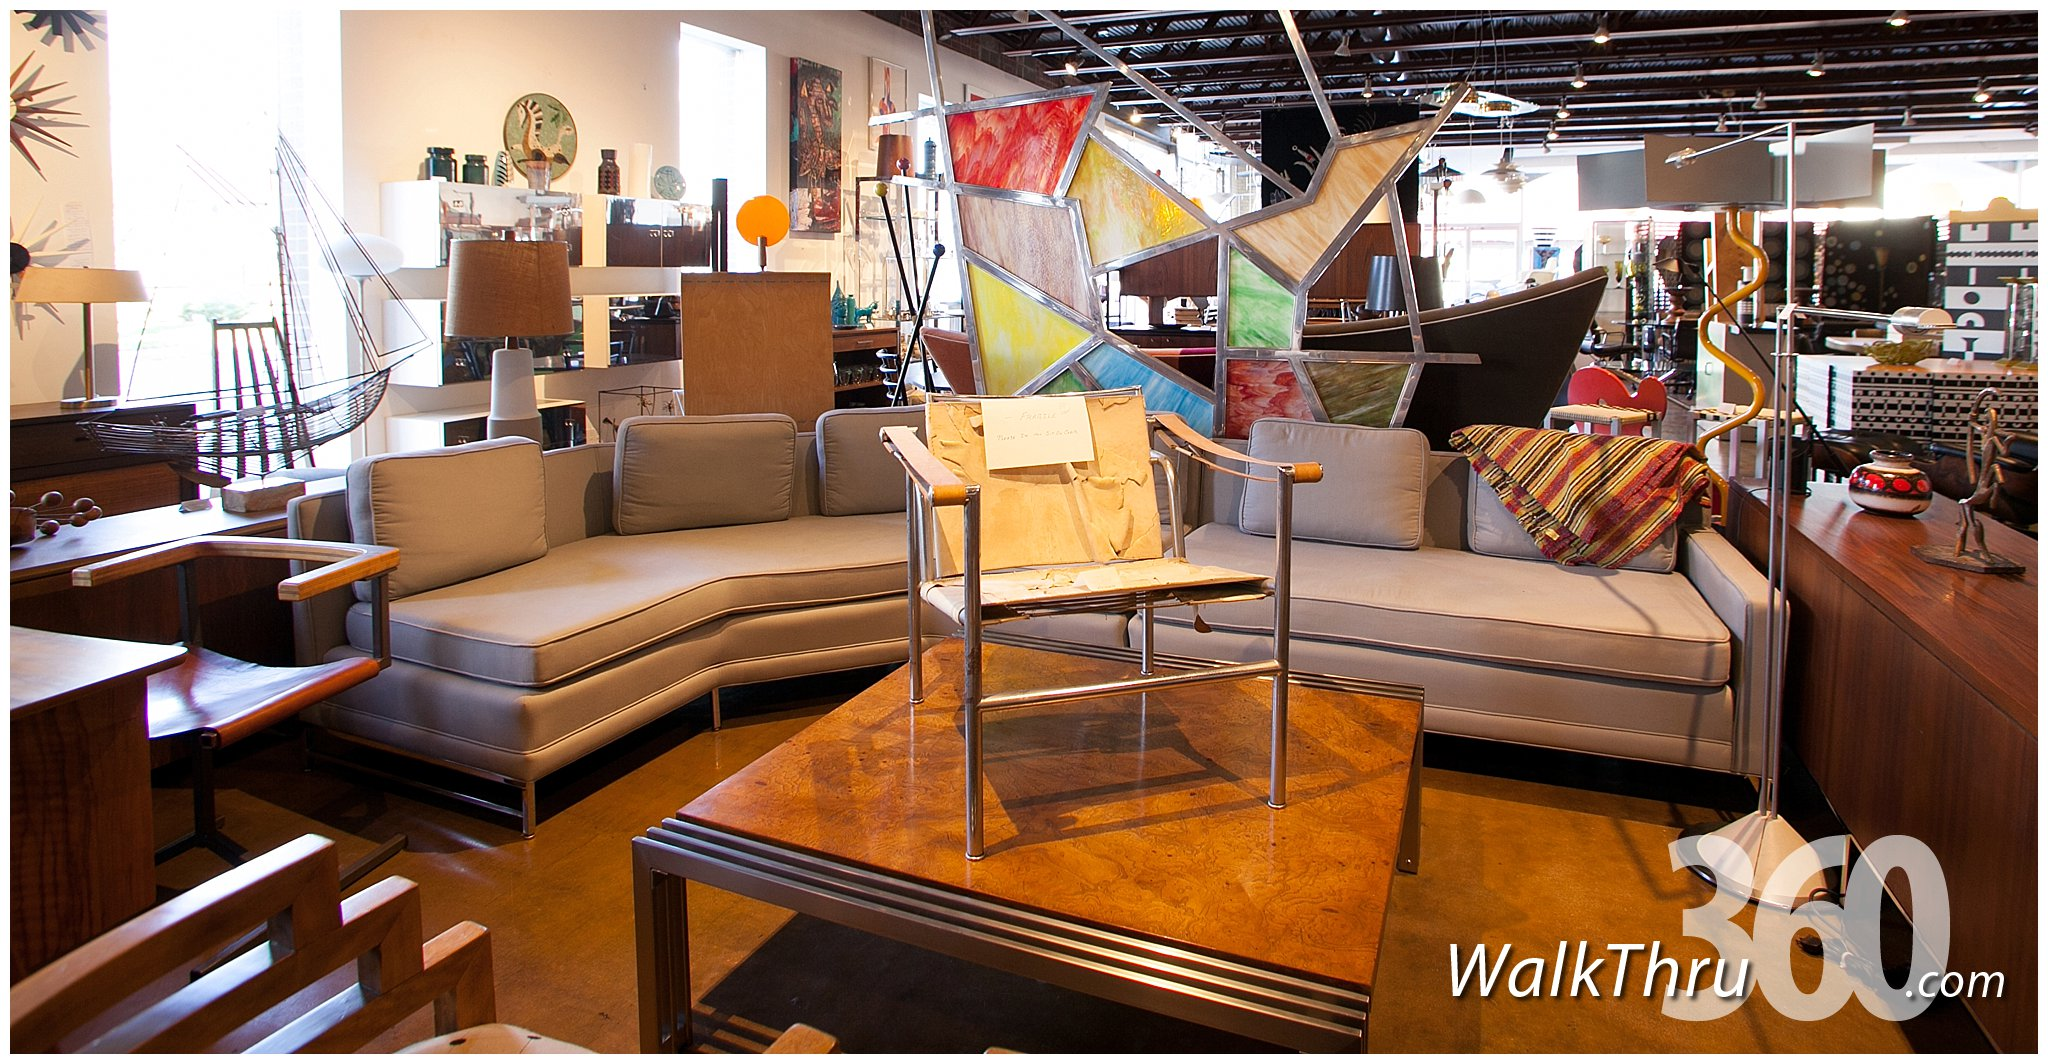 Furniture stores in kansas city the last straw furniture for Furniture kansas city